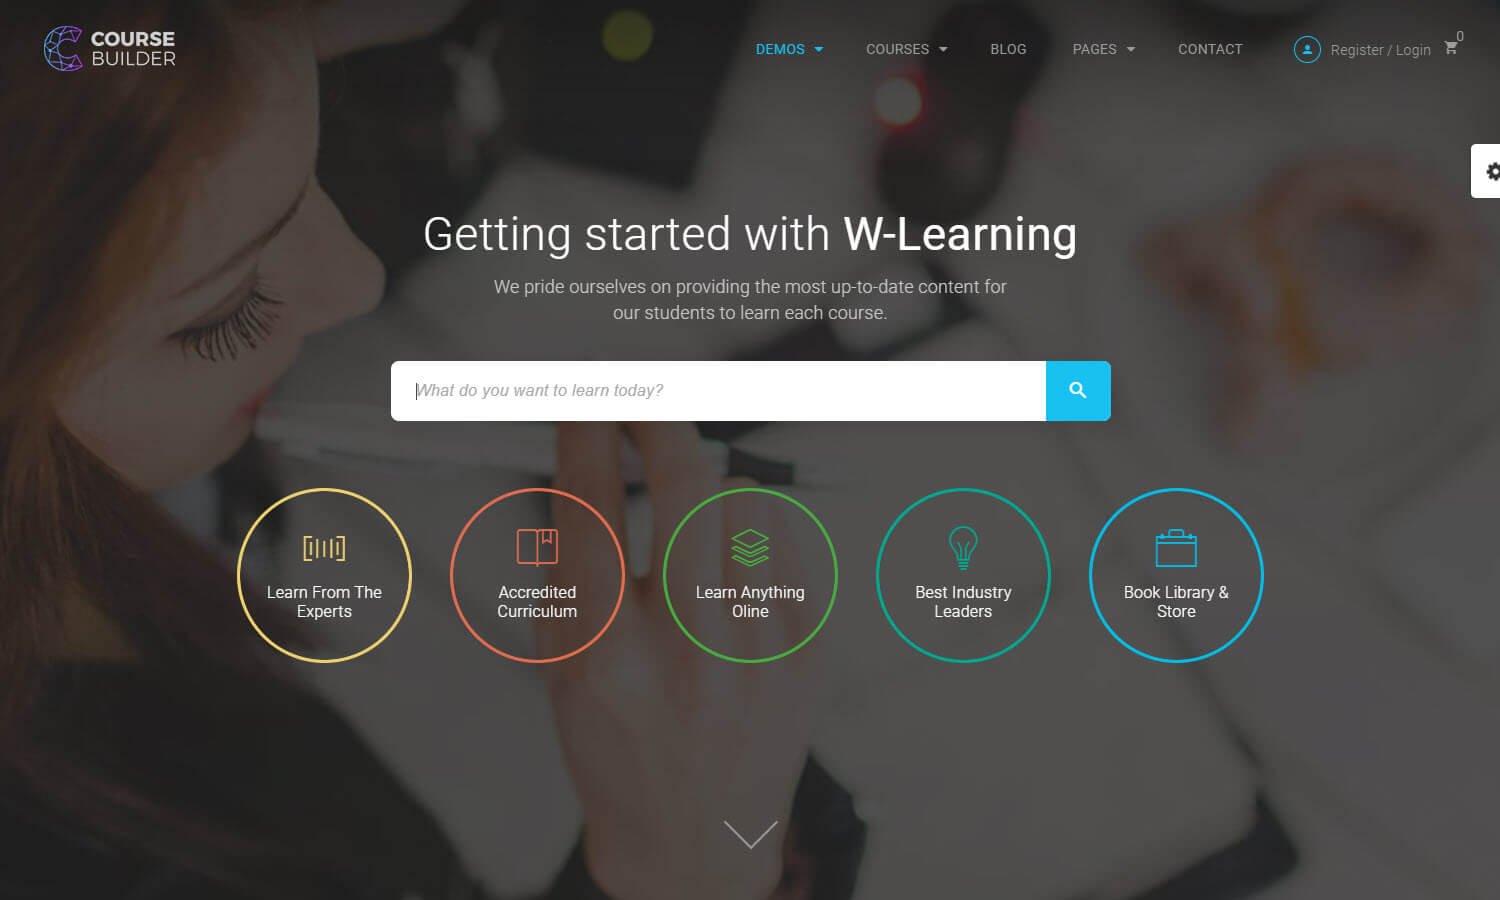 Course Builder LMS screenshot